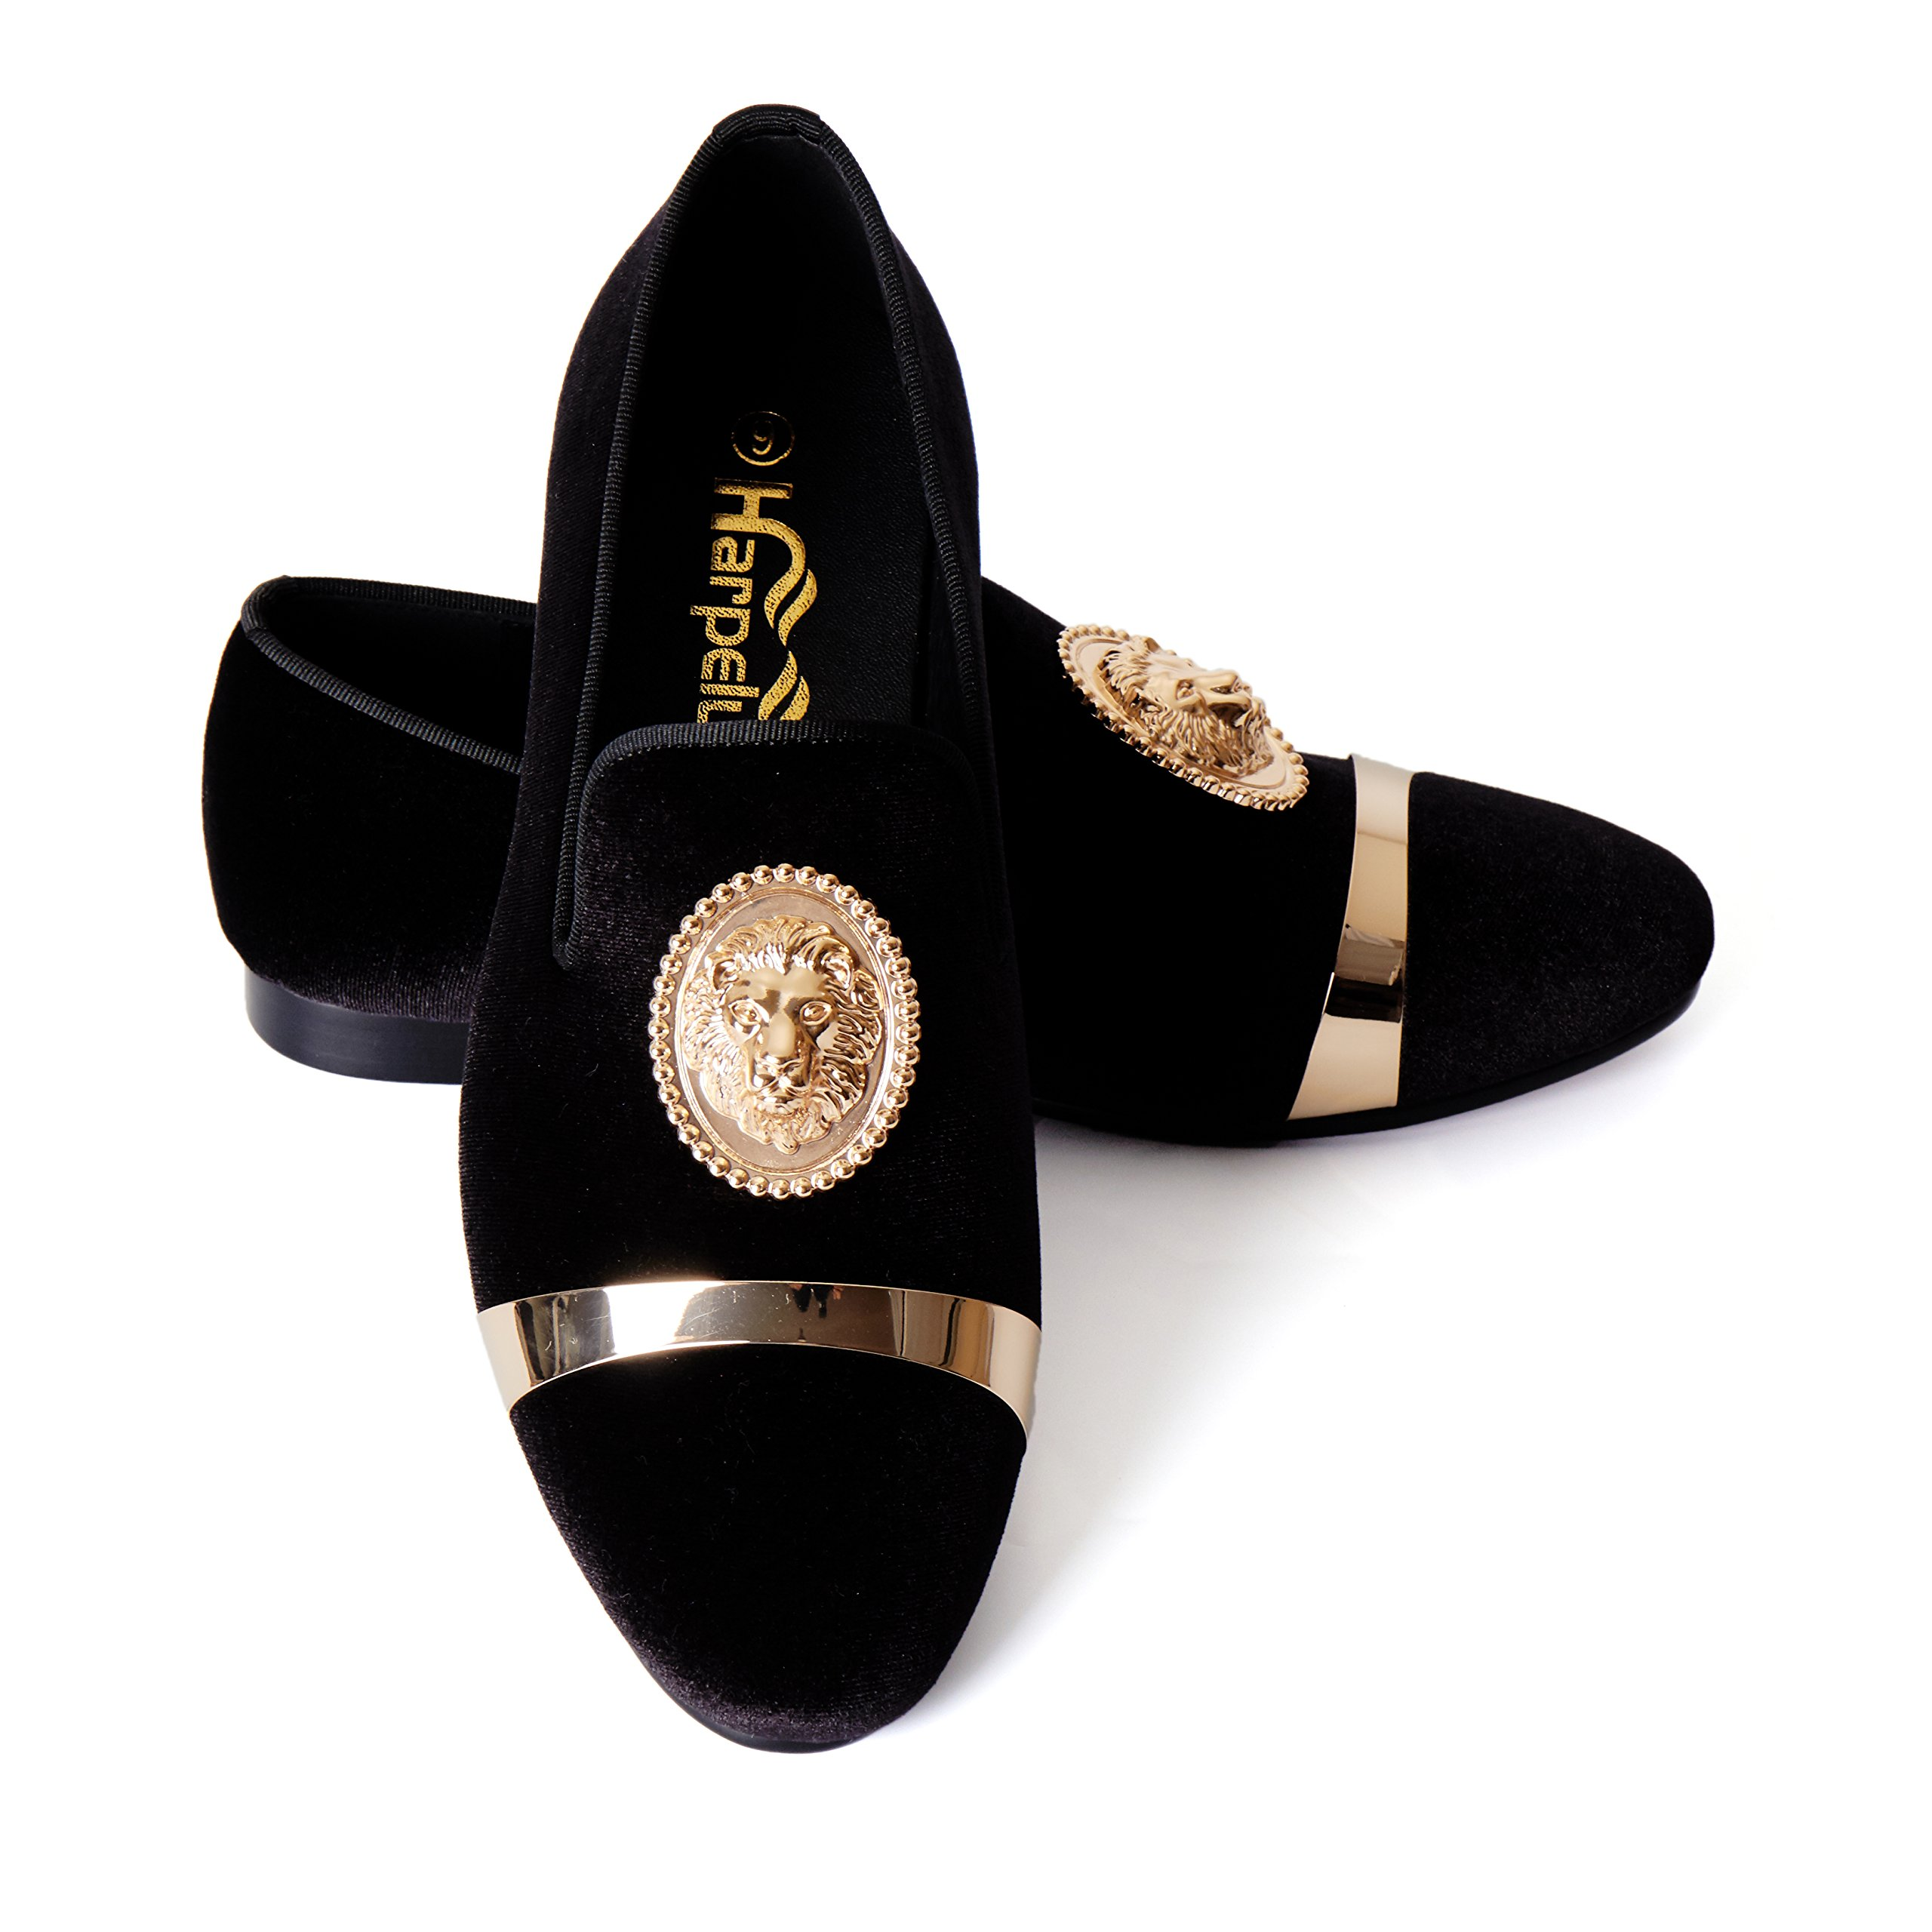 Animal Buckle Men Dress Shoes with Gold Plate (9)